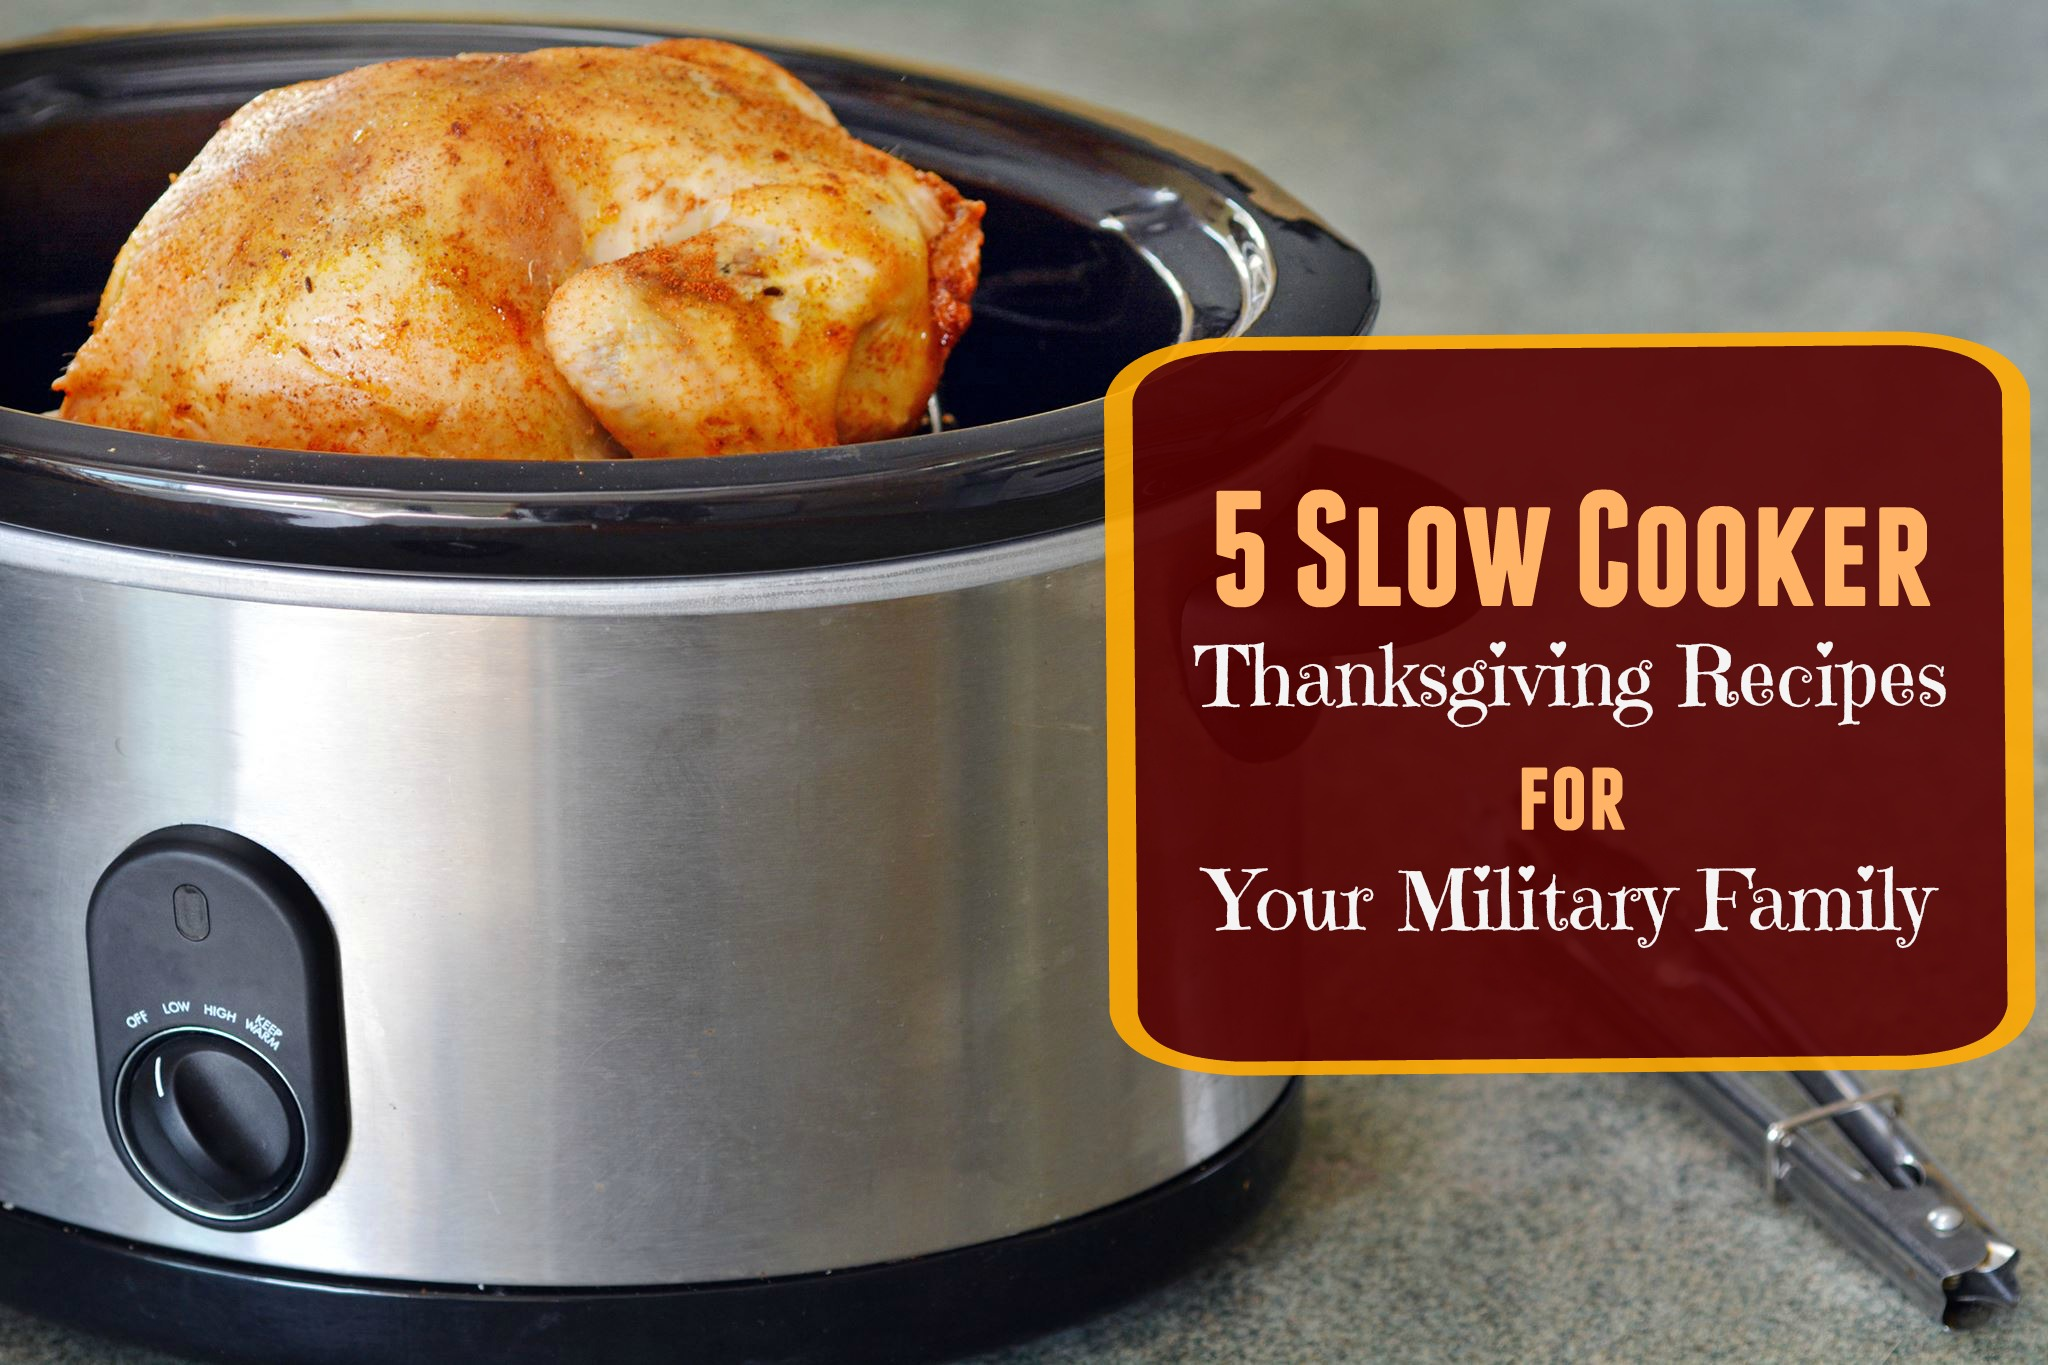 5 Slow Cooker Thanksgiving Recipes for Your Military Family